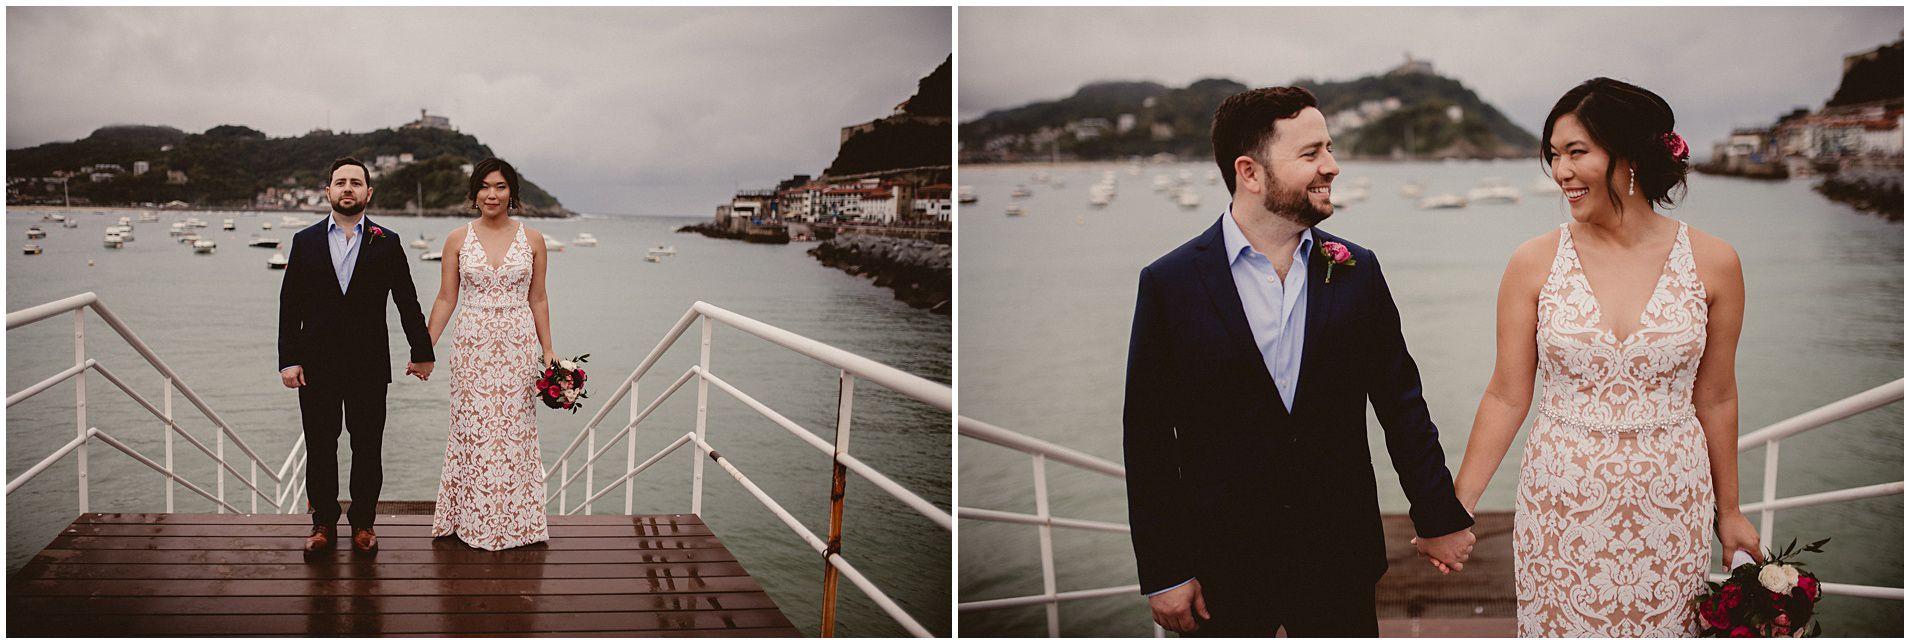 Brian & Julia - Destination wedding in San Sebastián  - Elopement in San Sebastian- ARTEFOTO60.jpg